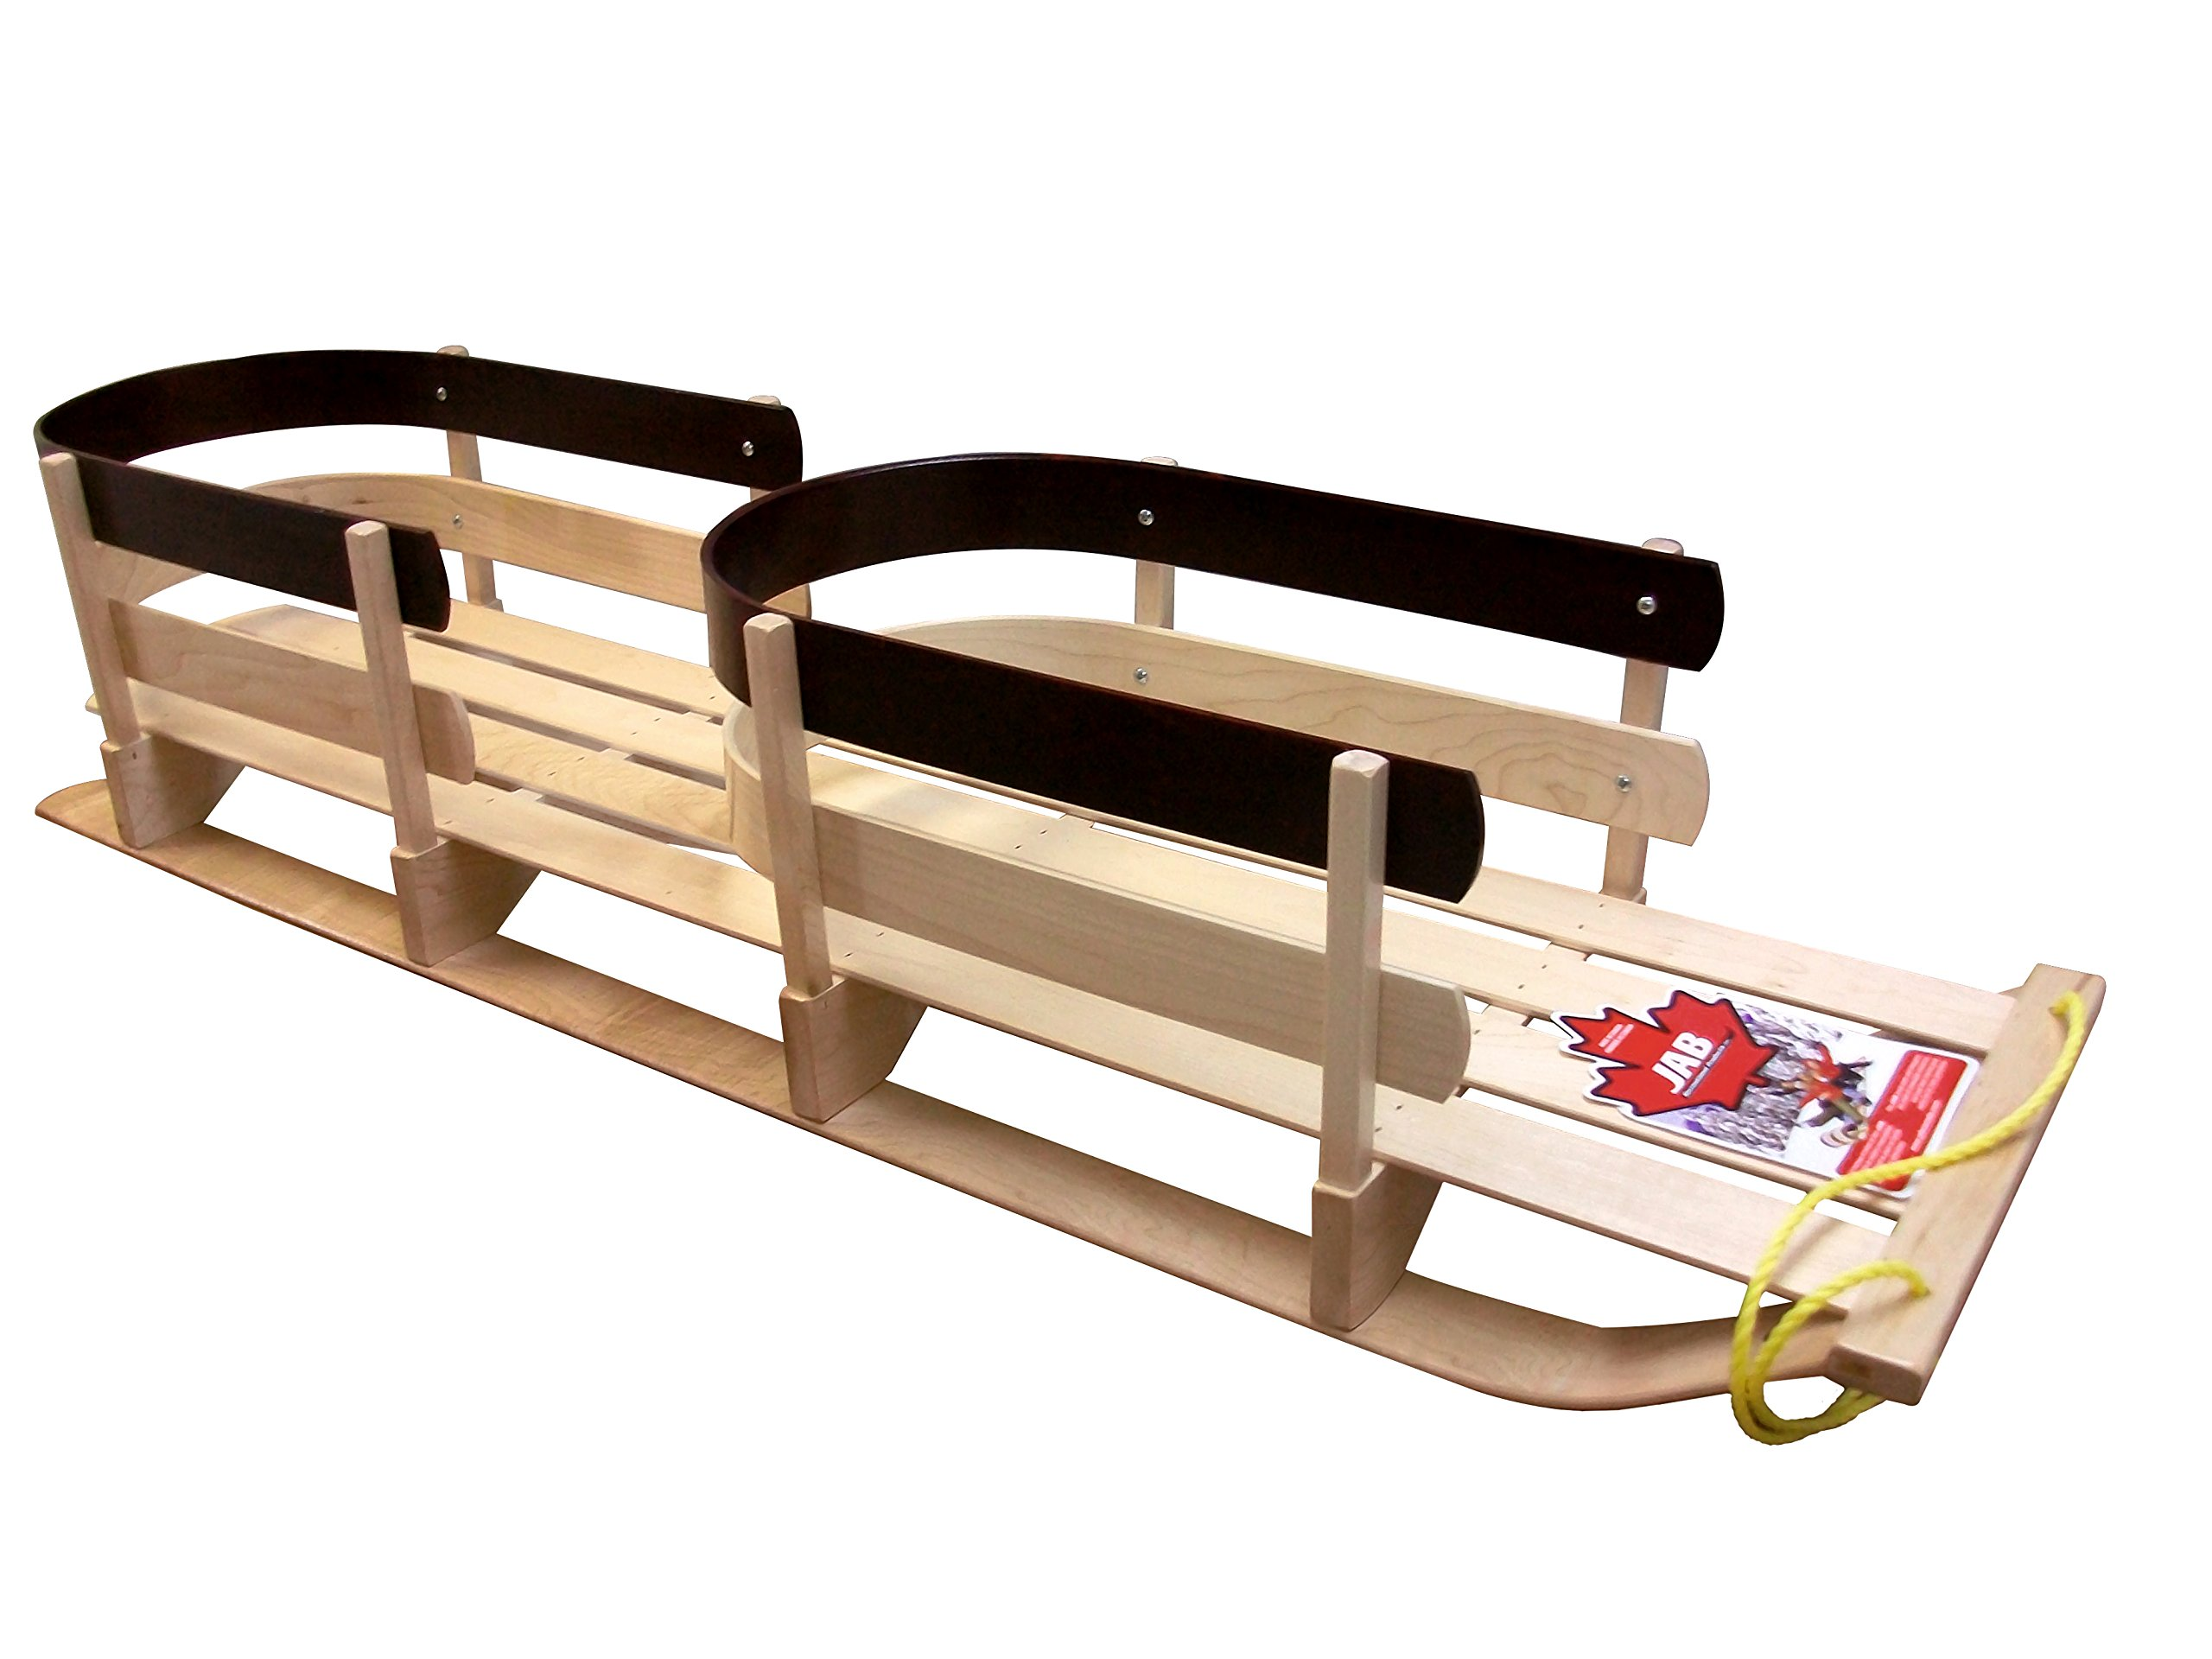 Eurosled St. Nick Donner Two Up Sleigh Sled by Eurosled